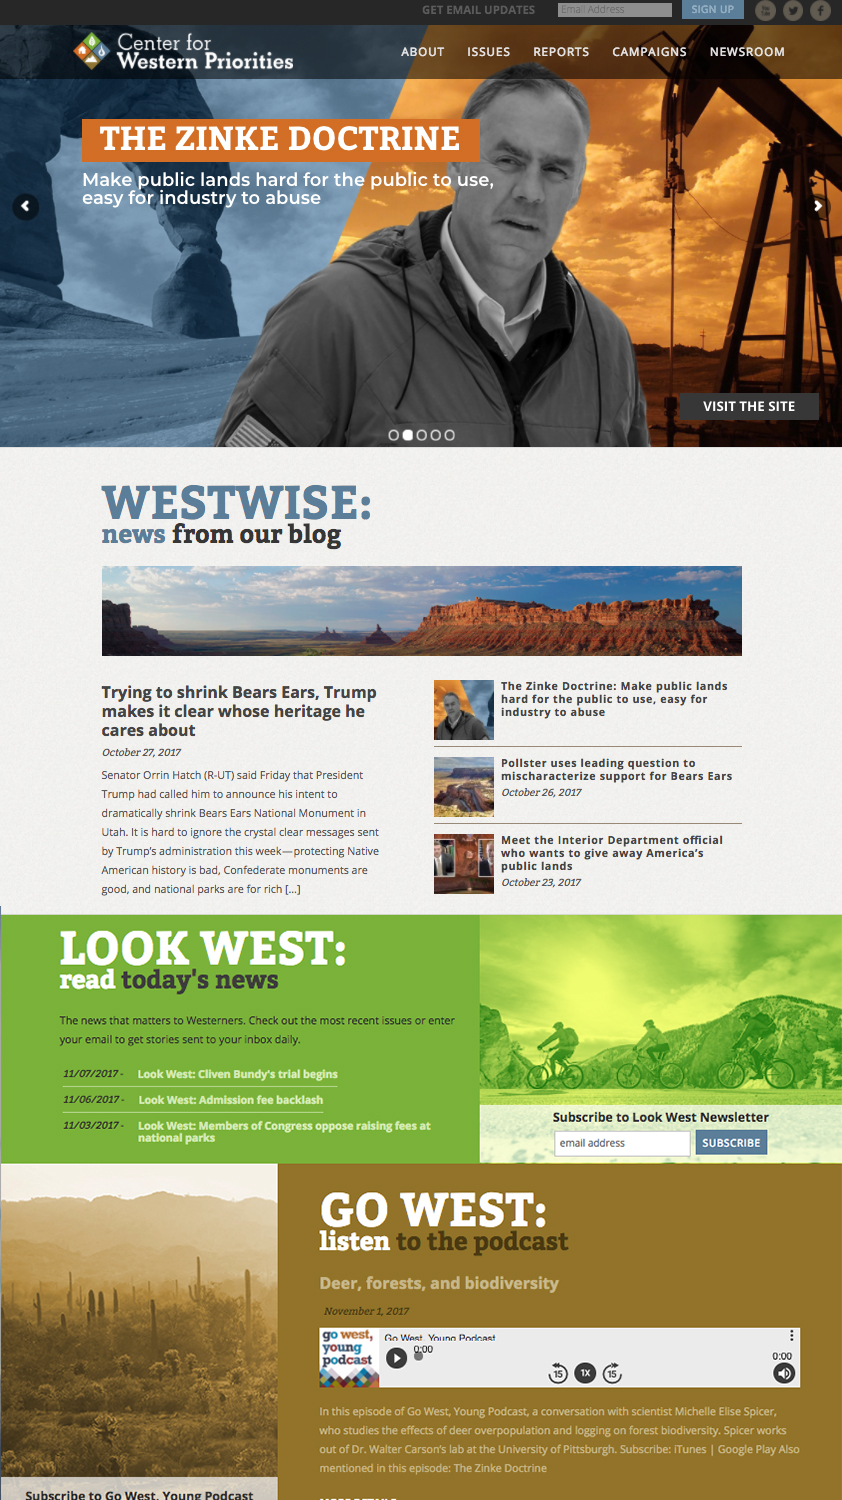 CWP ful home page featuring advanced slider, Medium blog feed, Blubrry podcast feed, and Mailchimp newsletter feed.